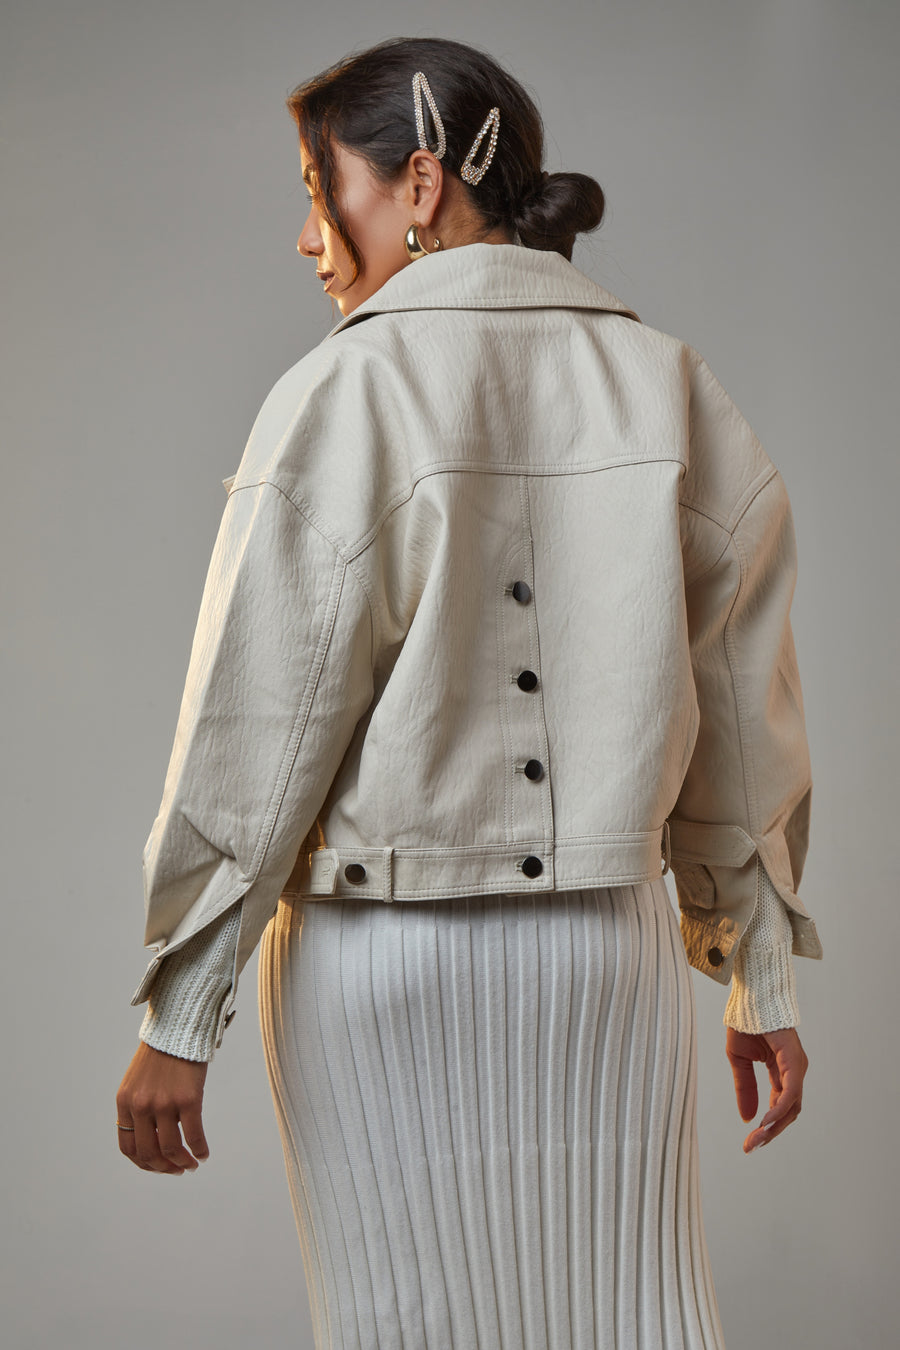 STEAMED MILK VEGAN LEATHER BIKER JACKET